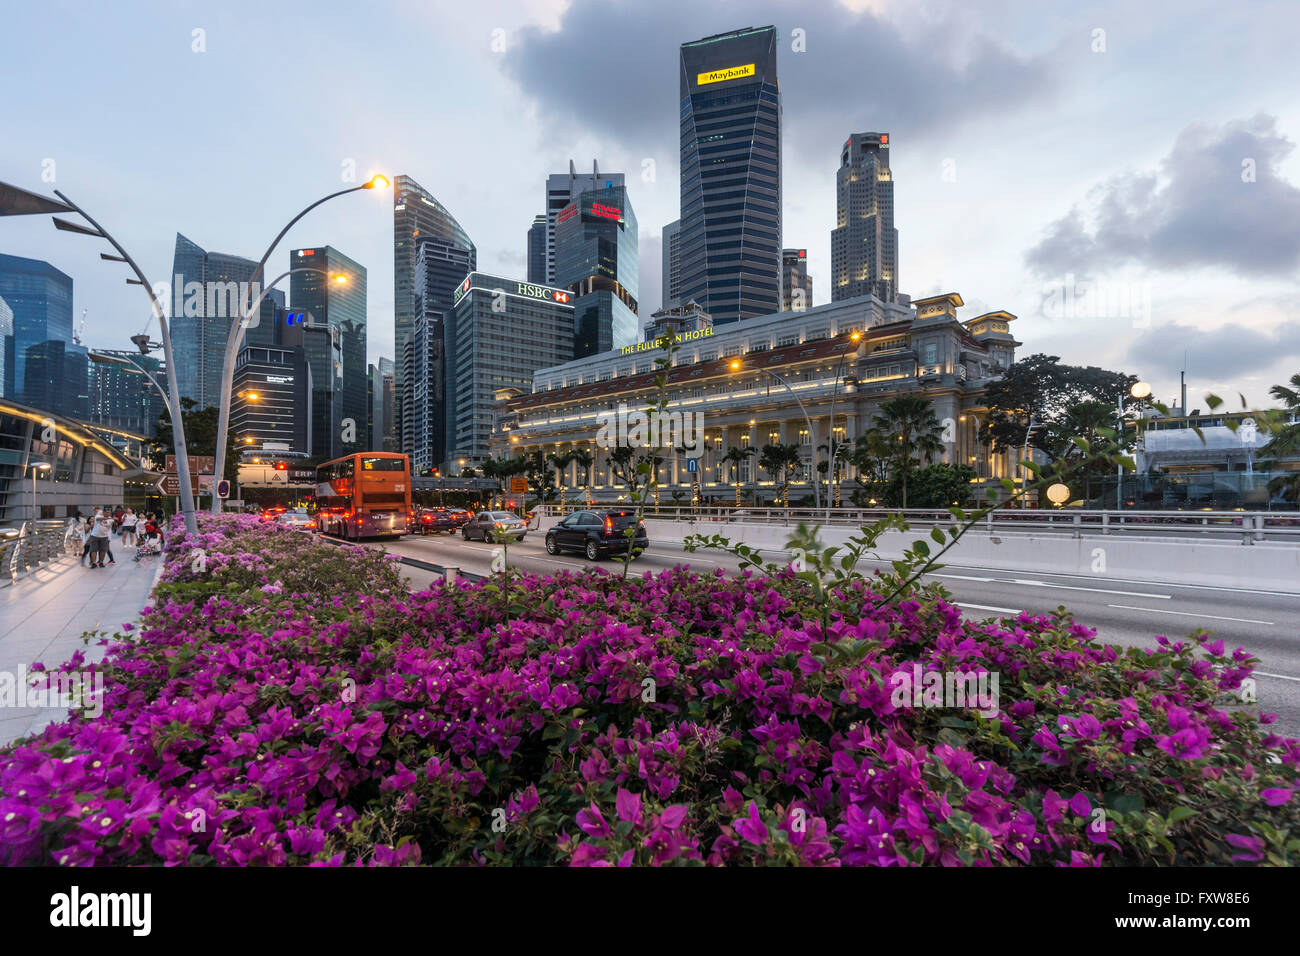 Financial District, Fullerton Hotel, Wolkenkratzer, Twilight, Singapur, Singapur, Southest Asien, travelstock44 Stockbild